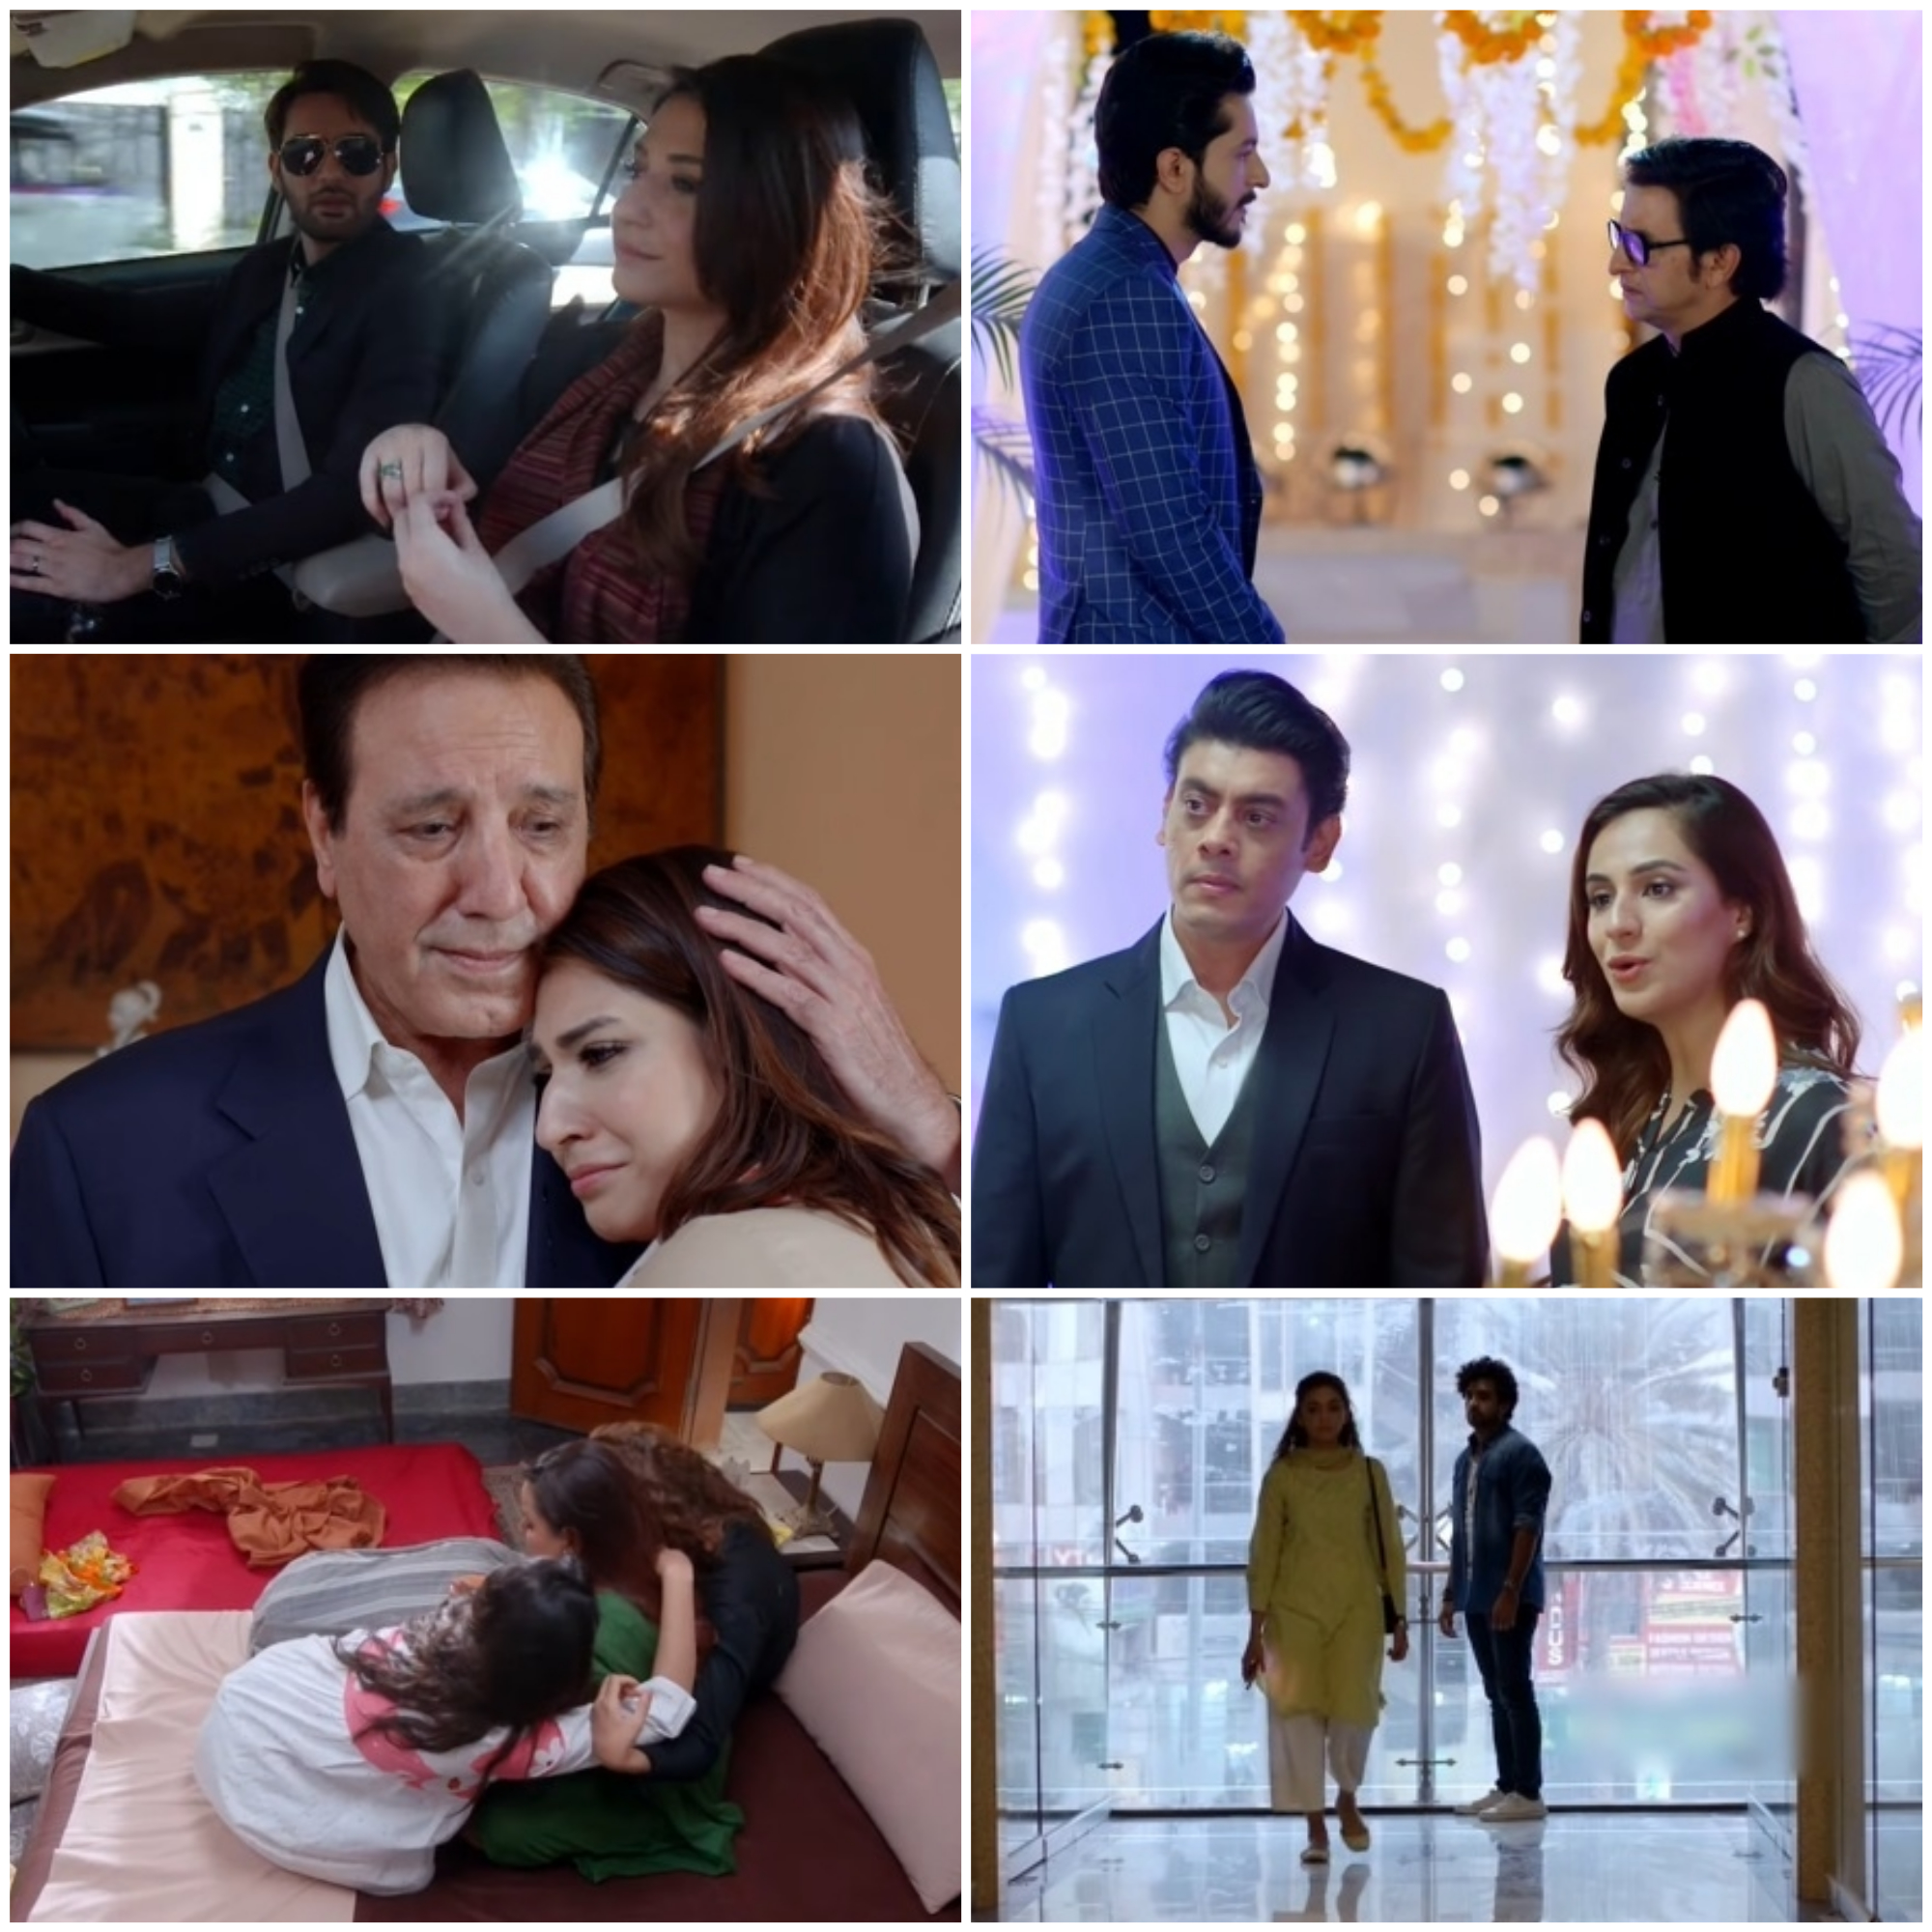 Shehnai Episode 9, 10 & 11 Story Review - Realistic Portrayal of Relationships